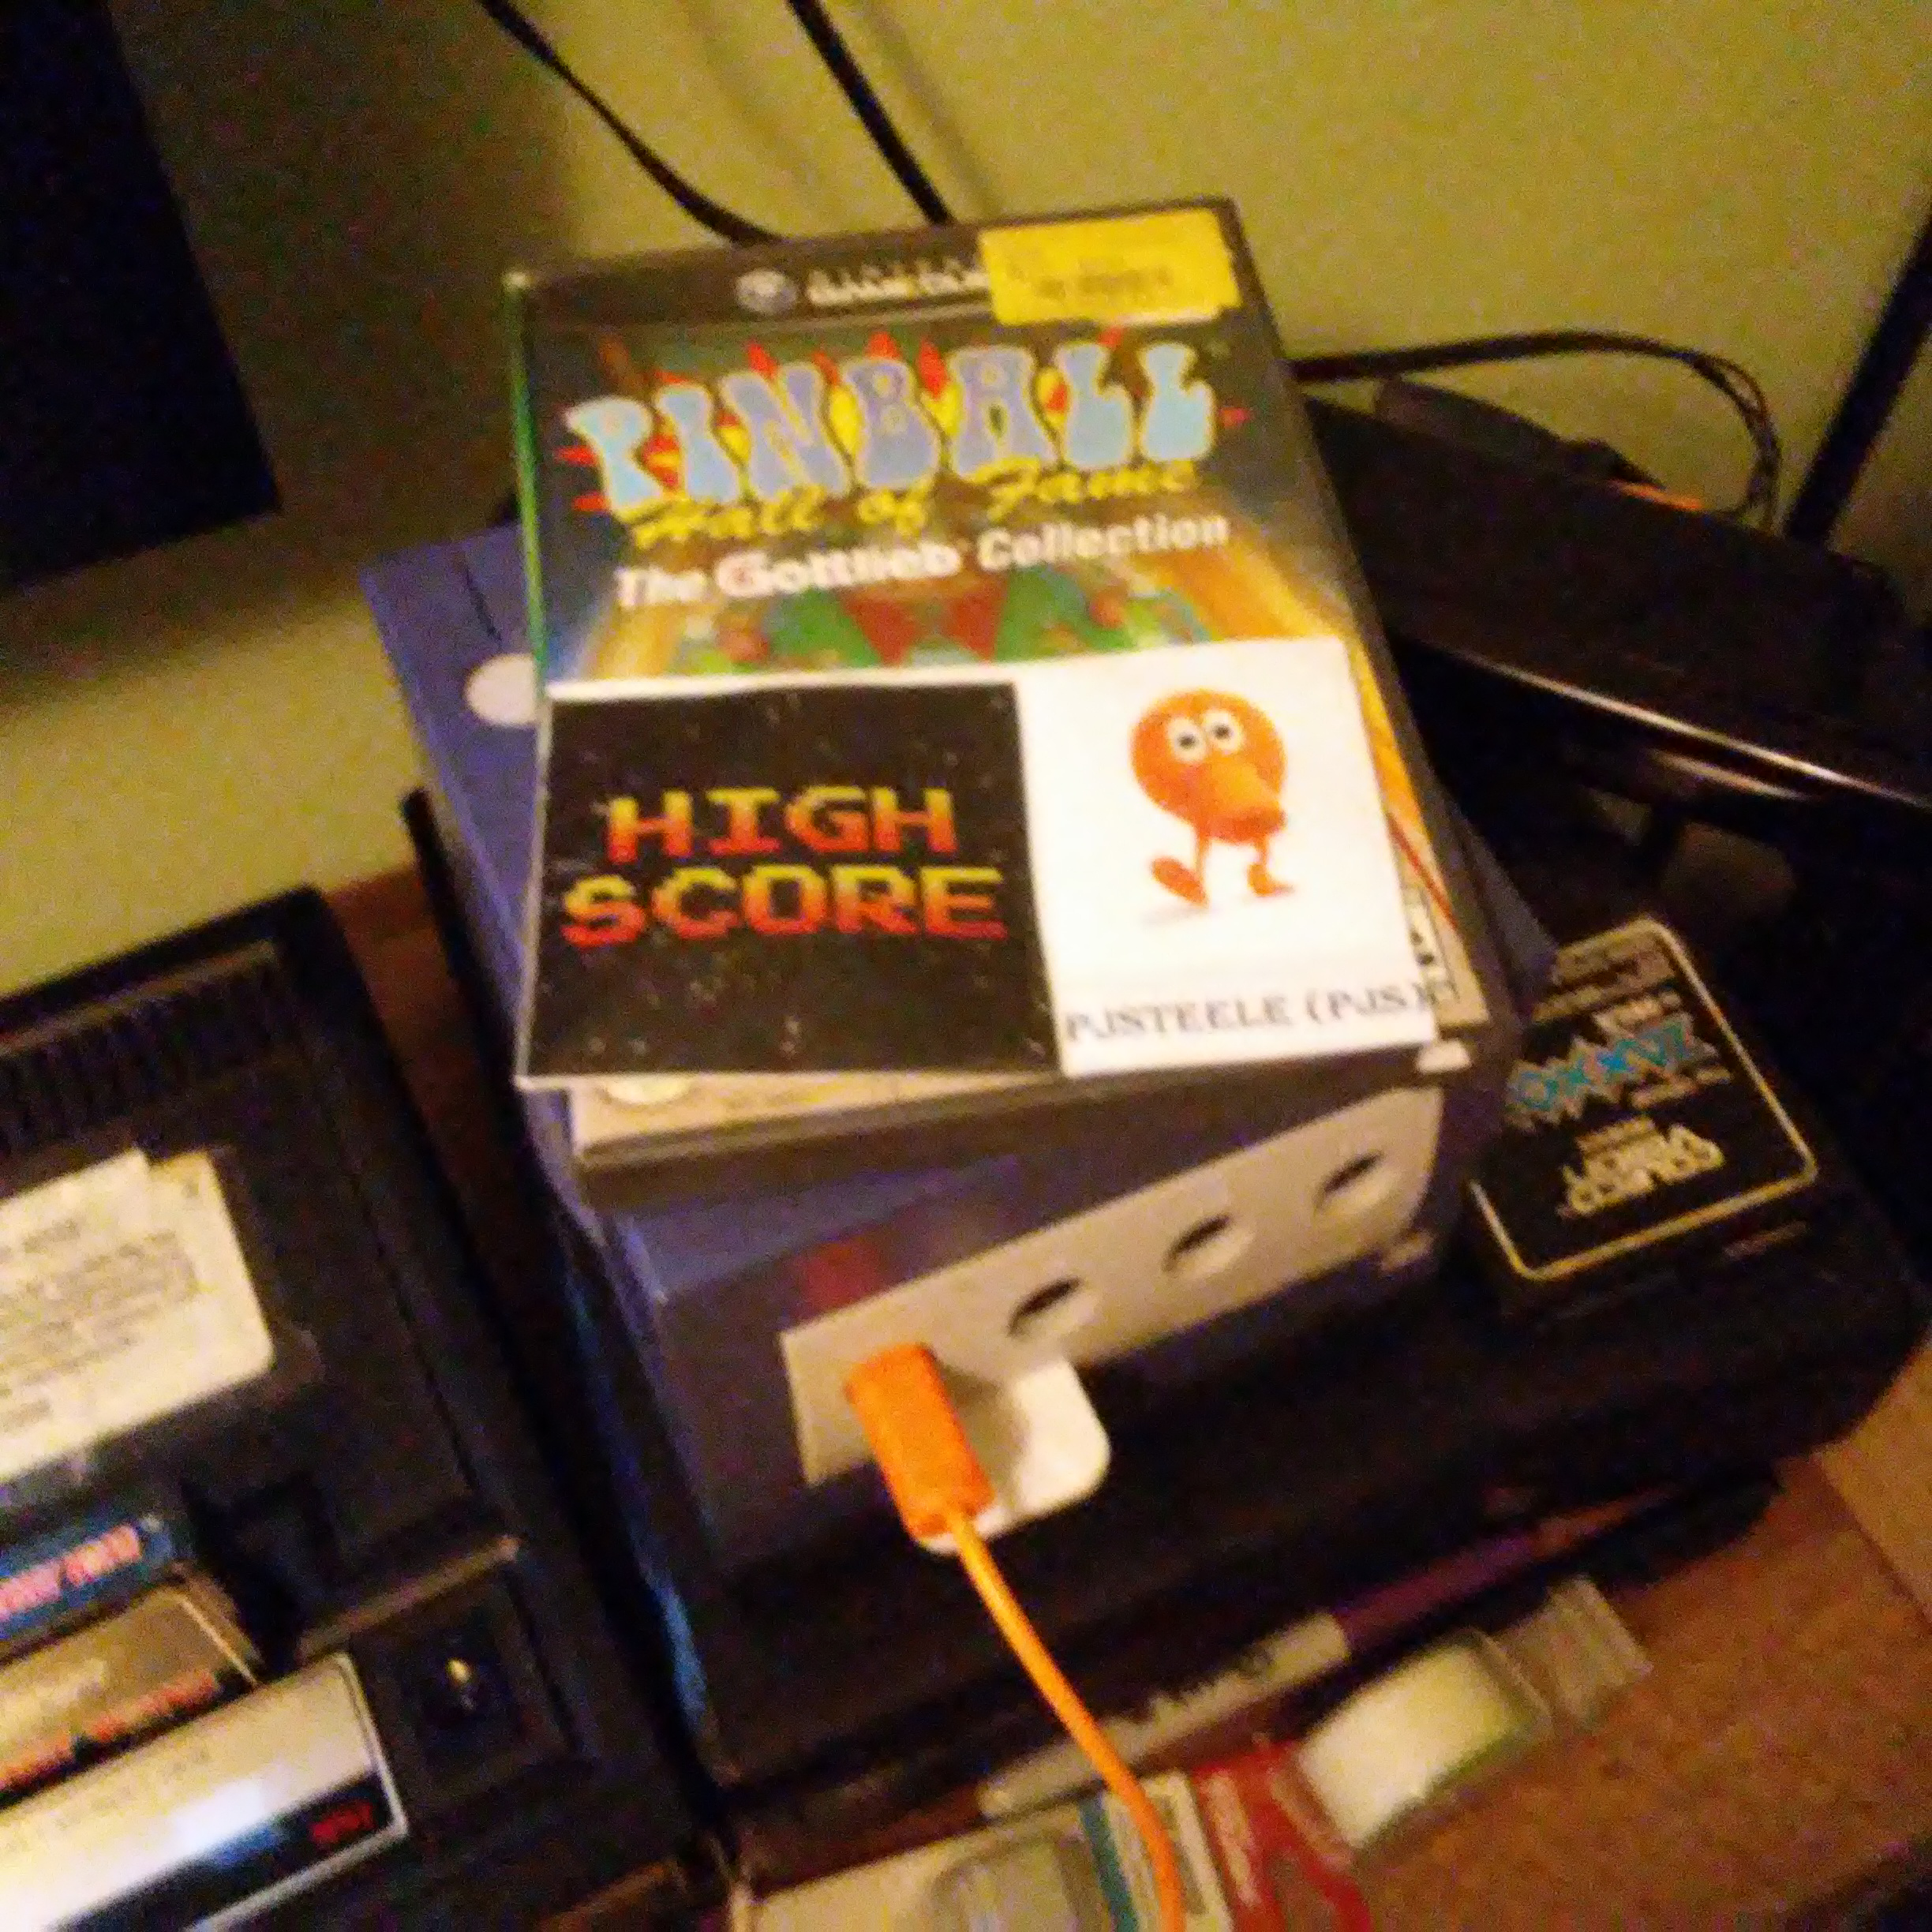 Pjsteele: Pinball Hall of Fame: The Gottlieb Collection: Victory [5 Balls] (GameCube) 4,013,929 points on 2018-01-17 20:14:04